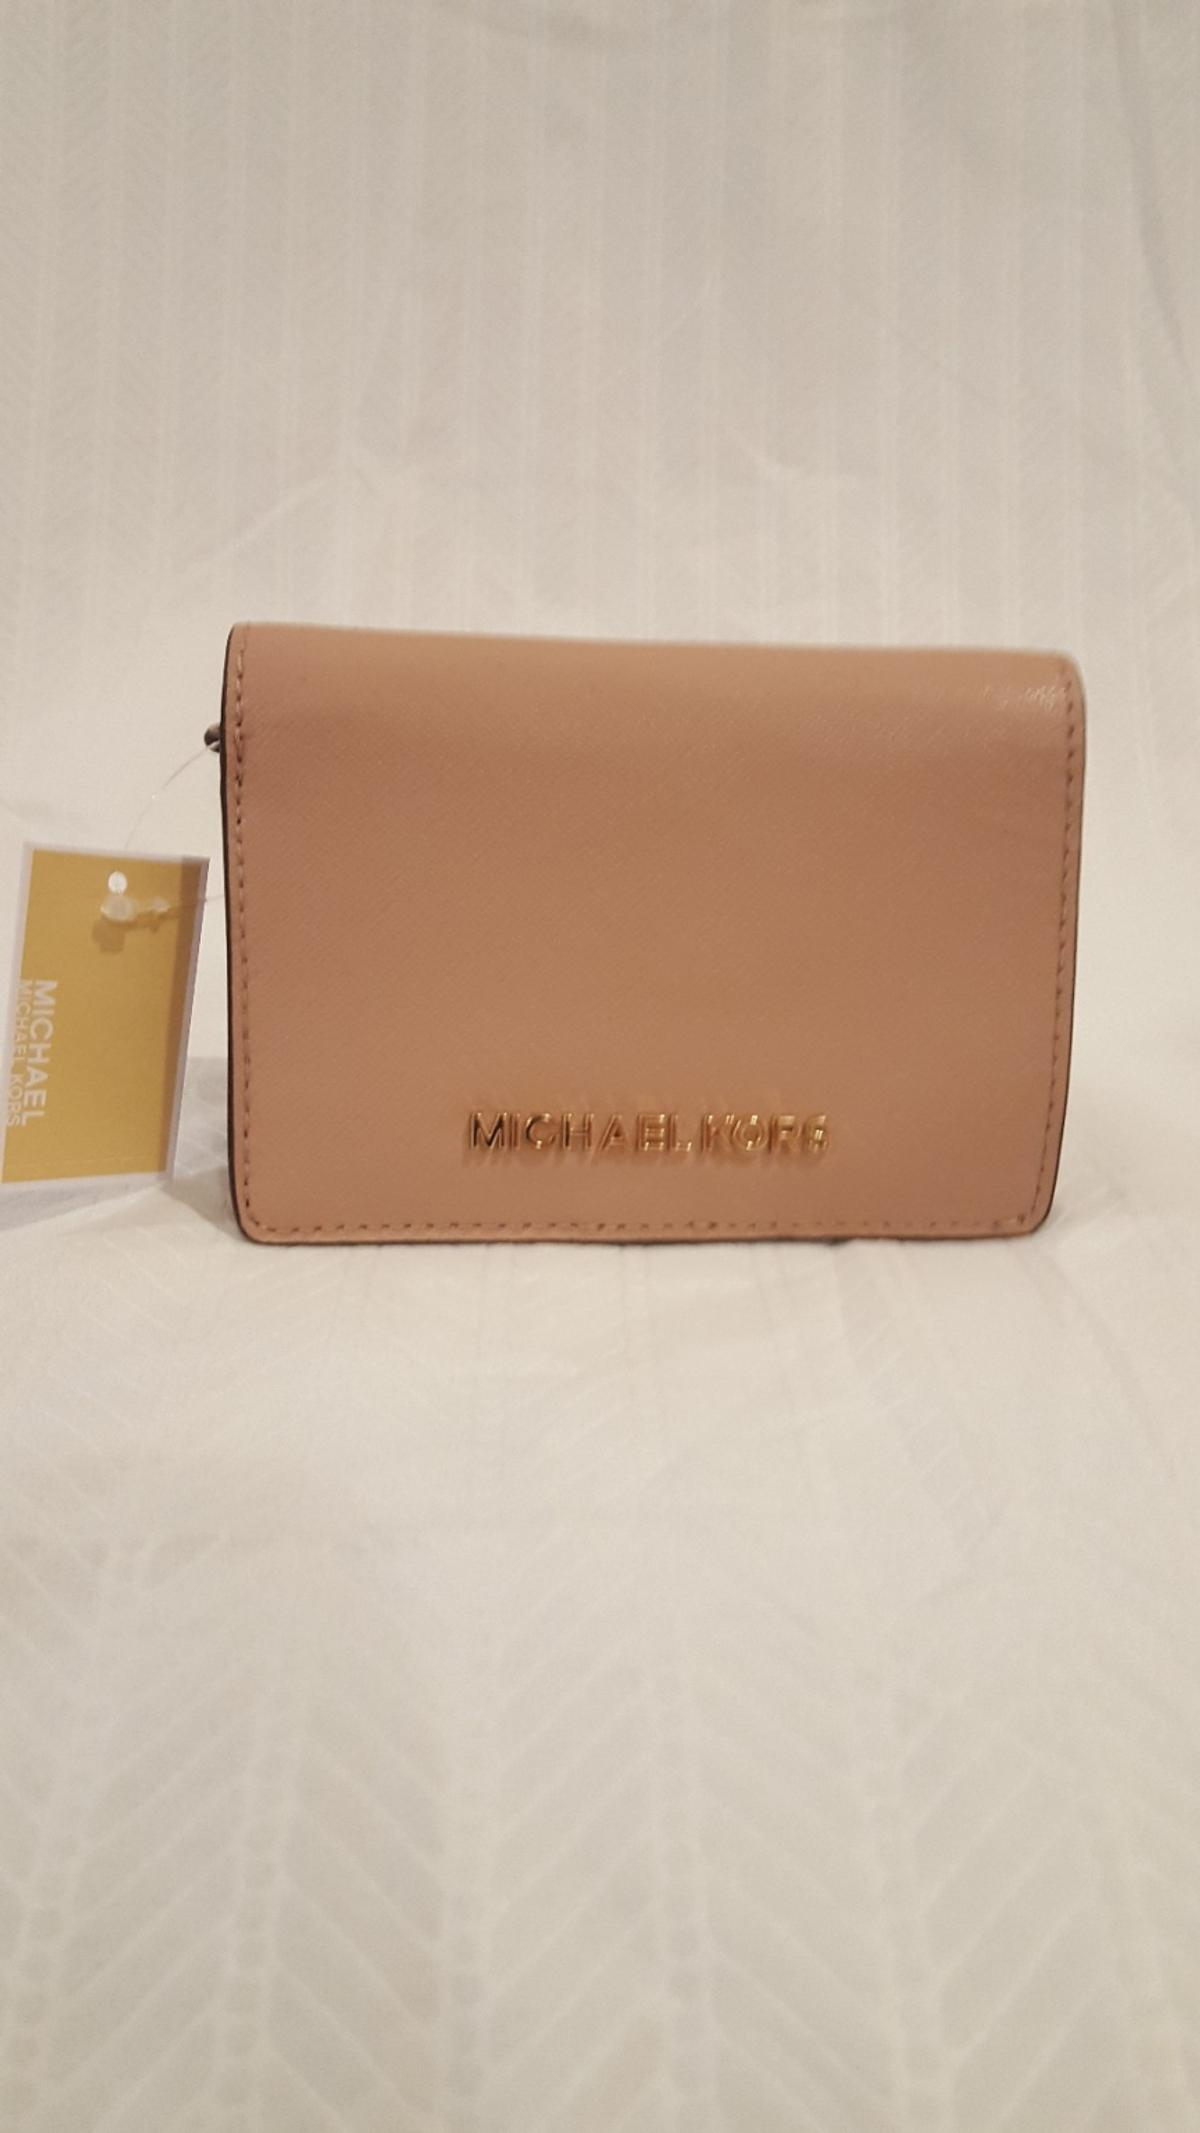 """Michael Kors Medium Jet Set Travel Slim Wallet *Brand New!! Beautiful fawn color, front flap snap closure. Logo on front. 6 card slot, currency slot, zip pocket, and ID window. Measures 3.5""""H x 1.5"""" D"""